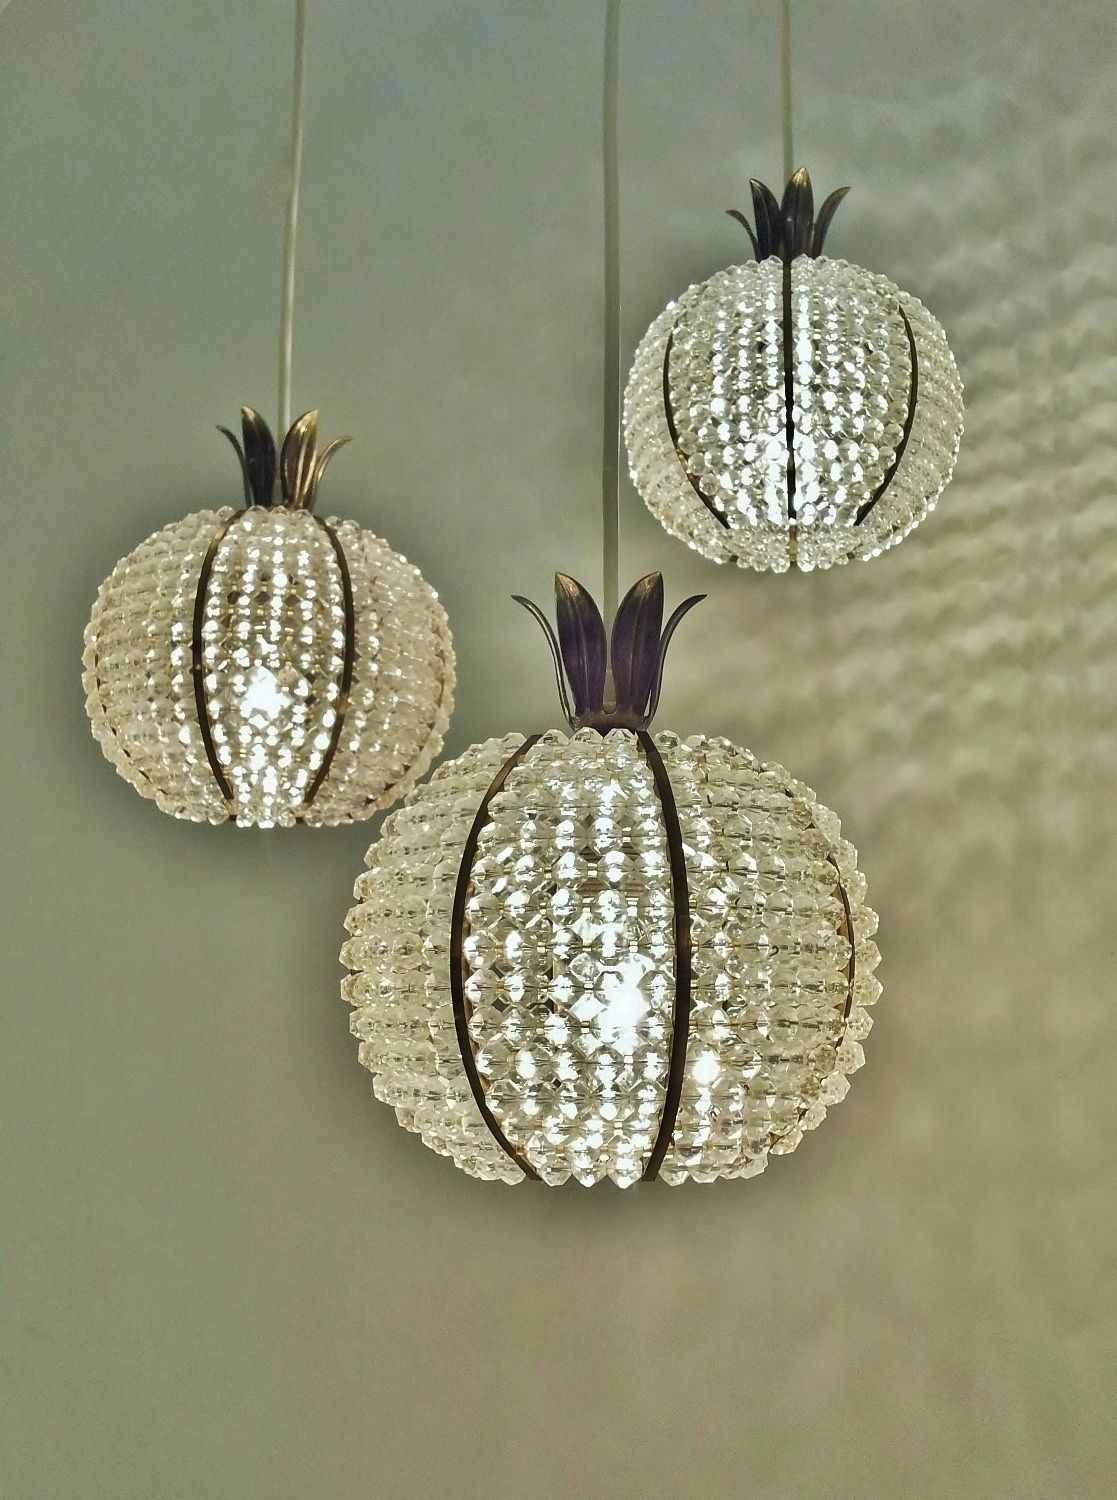 pineapple chandelier other things lampen innenarchitektur und architektur. Black Bedroom Furniture Sets. Home Design Ideas